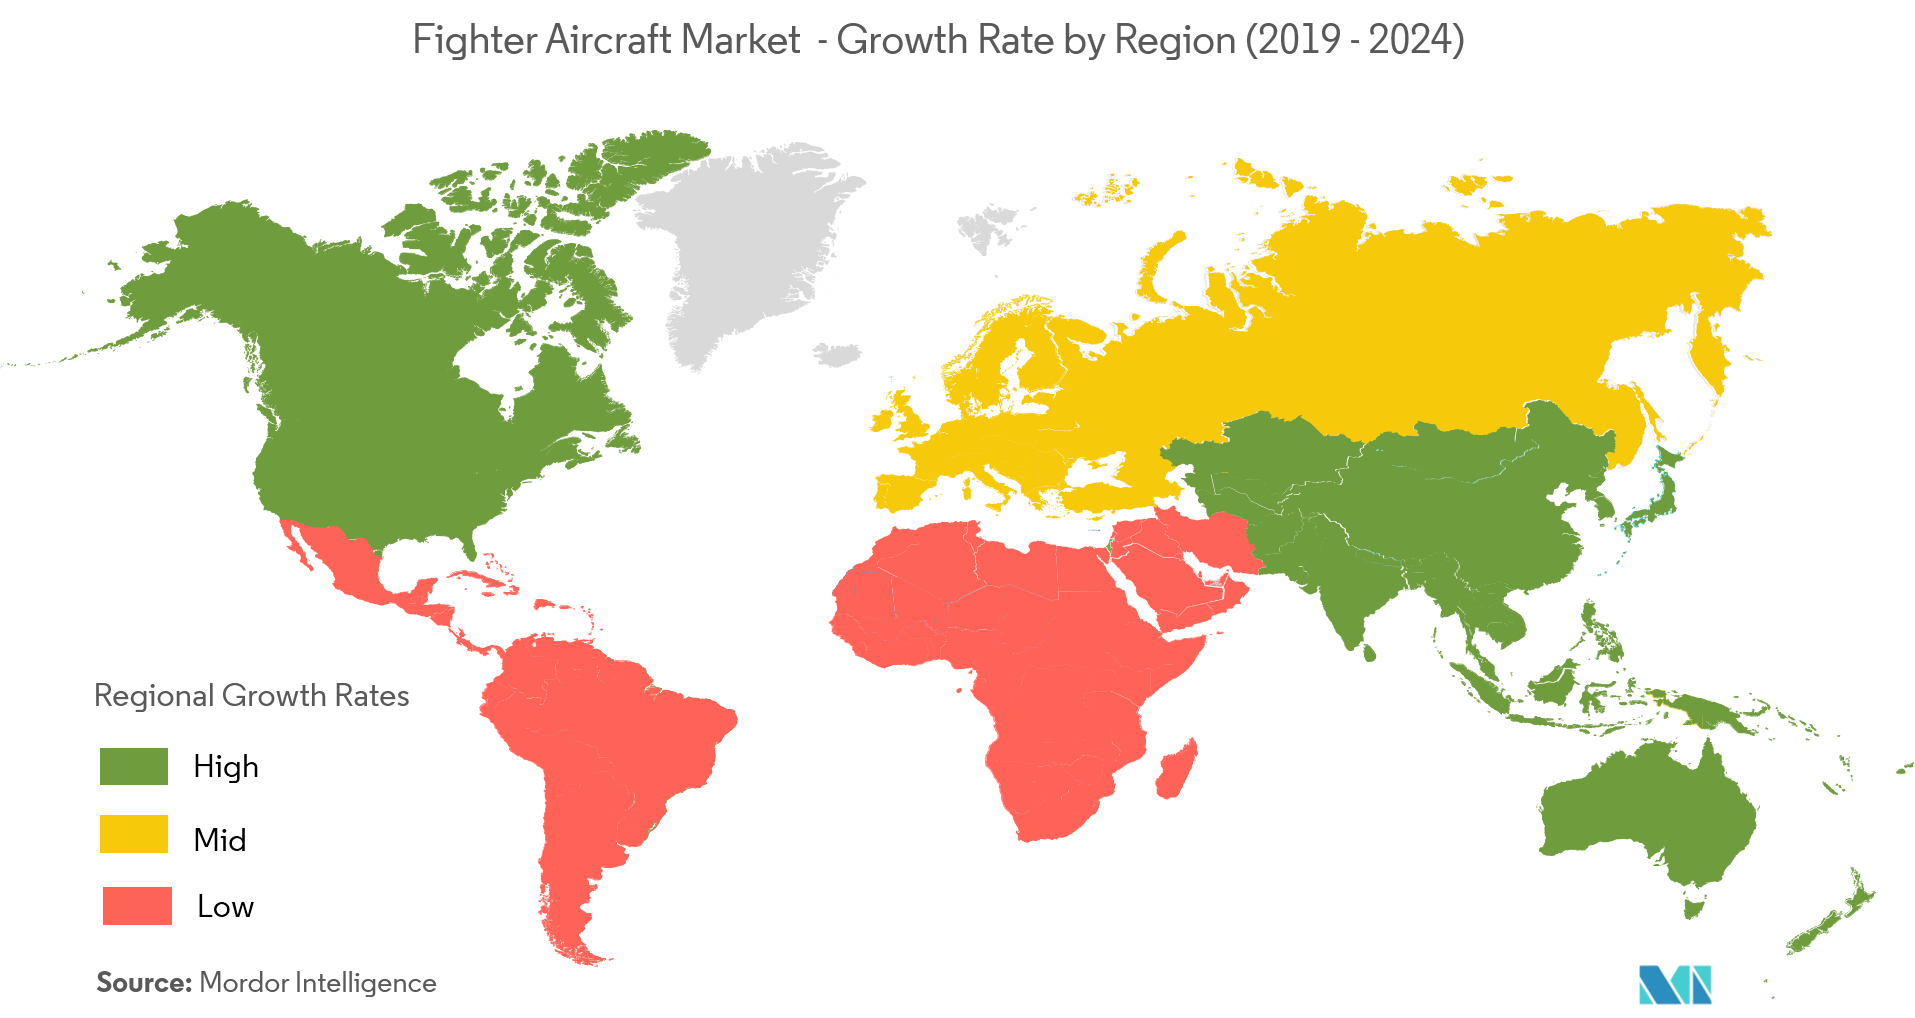 Fighter Aircraft Market geography